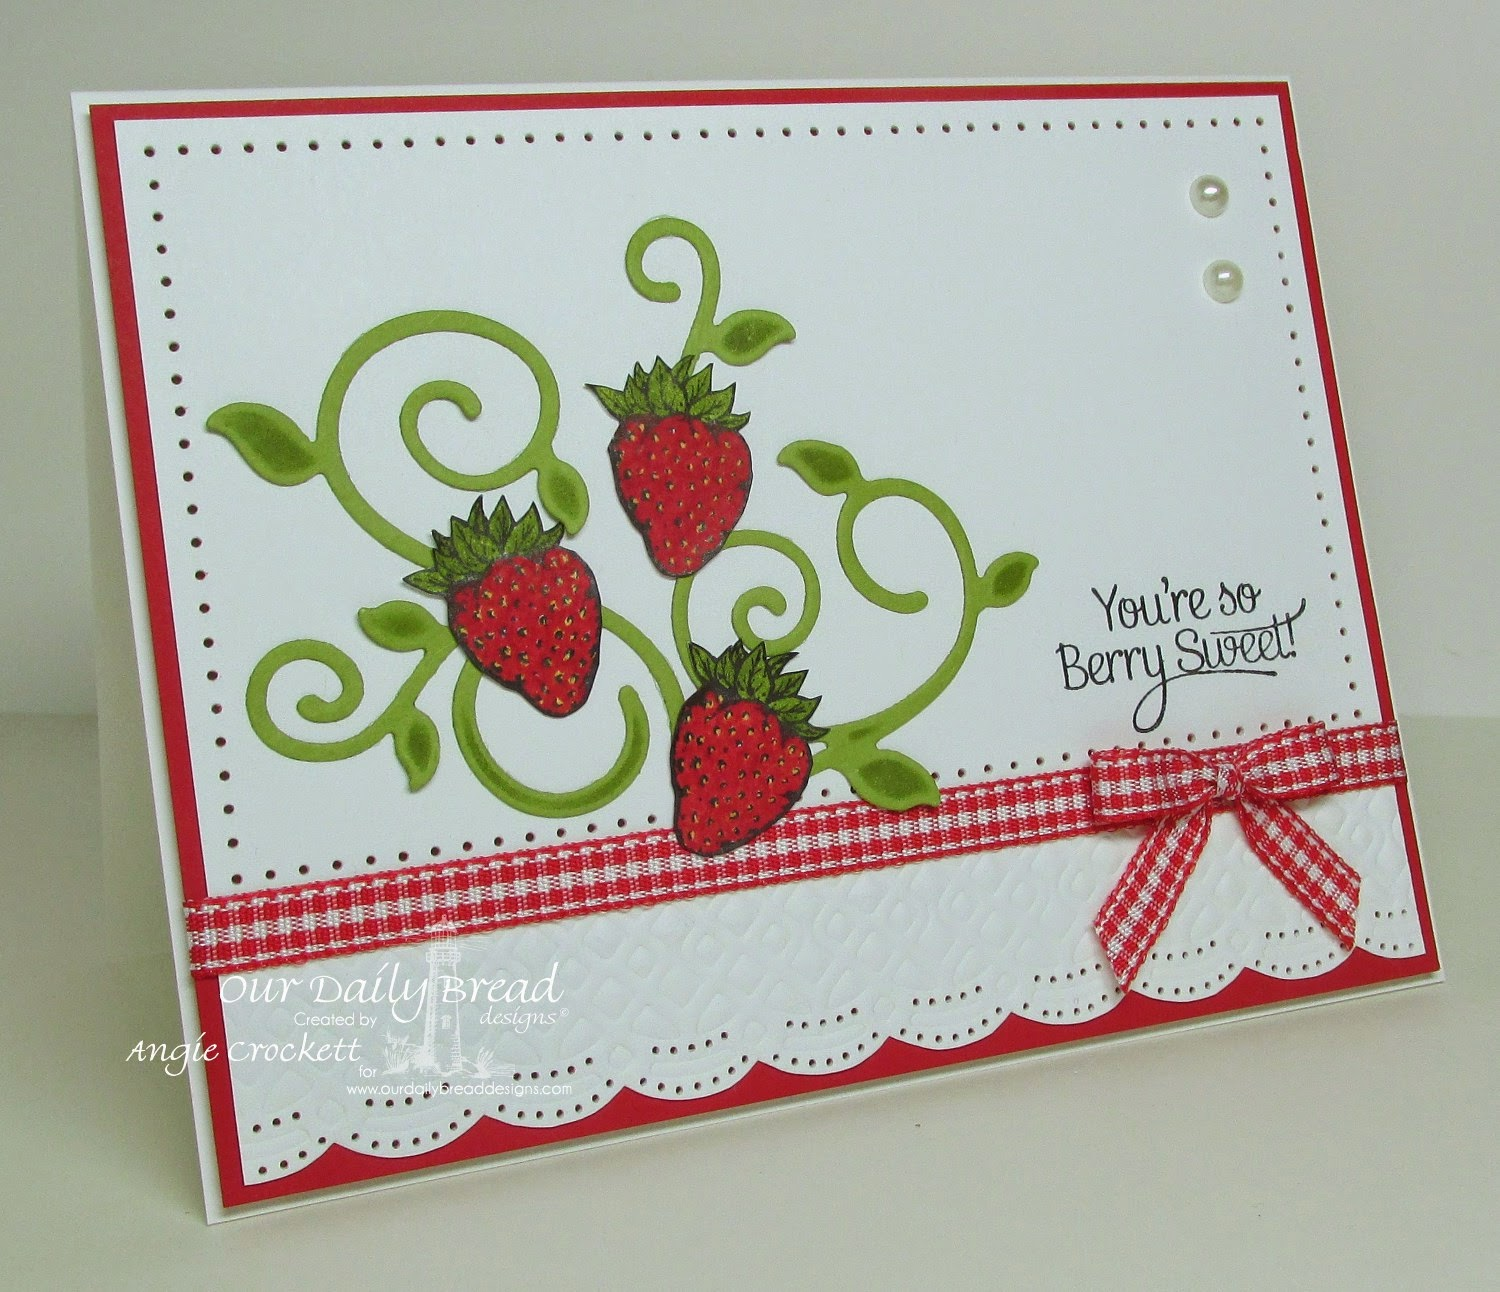 ODBD Strawberries, Strawberries and Pickles, ODBD Custom Fancy Foliage Dies, ODBD Custom Beautiful Border Dies, Card Designer Angie Crockett